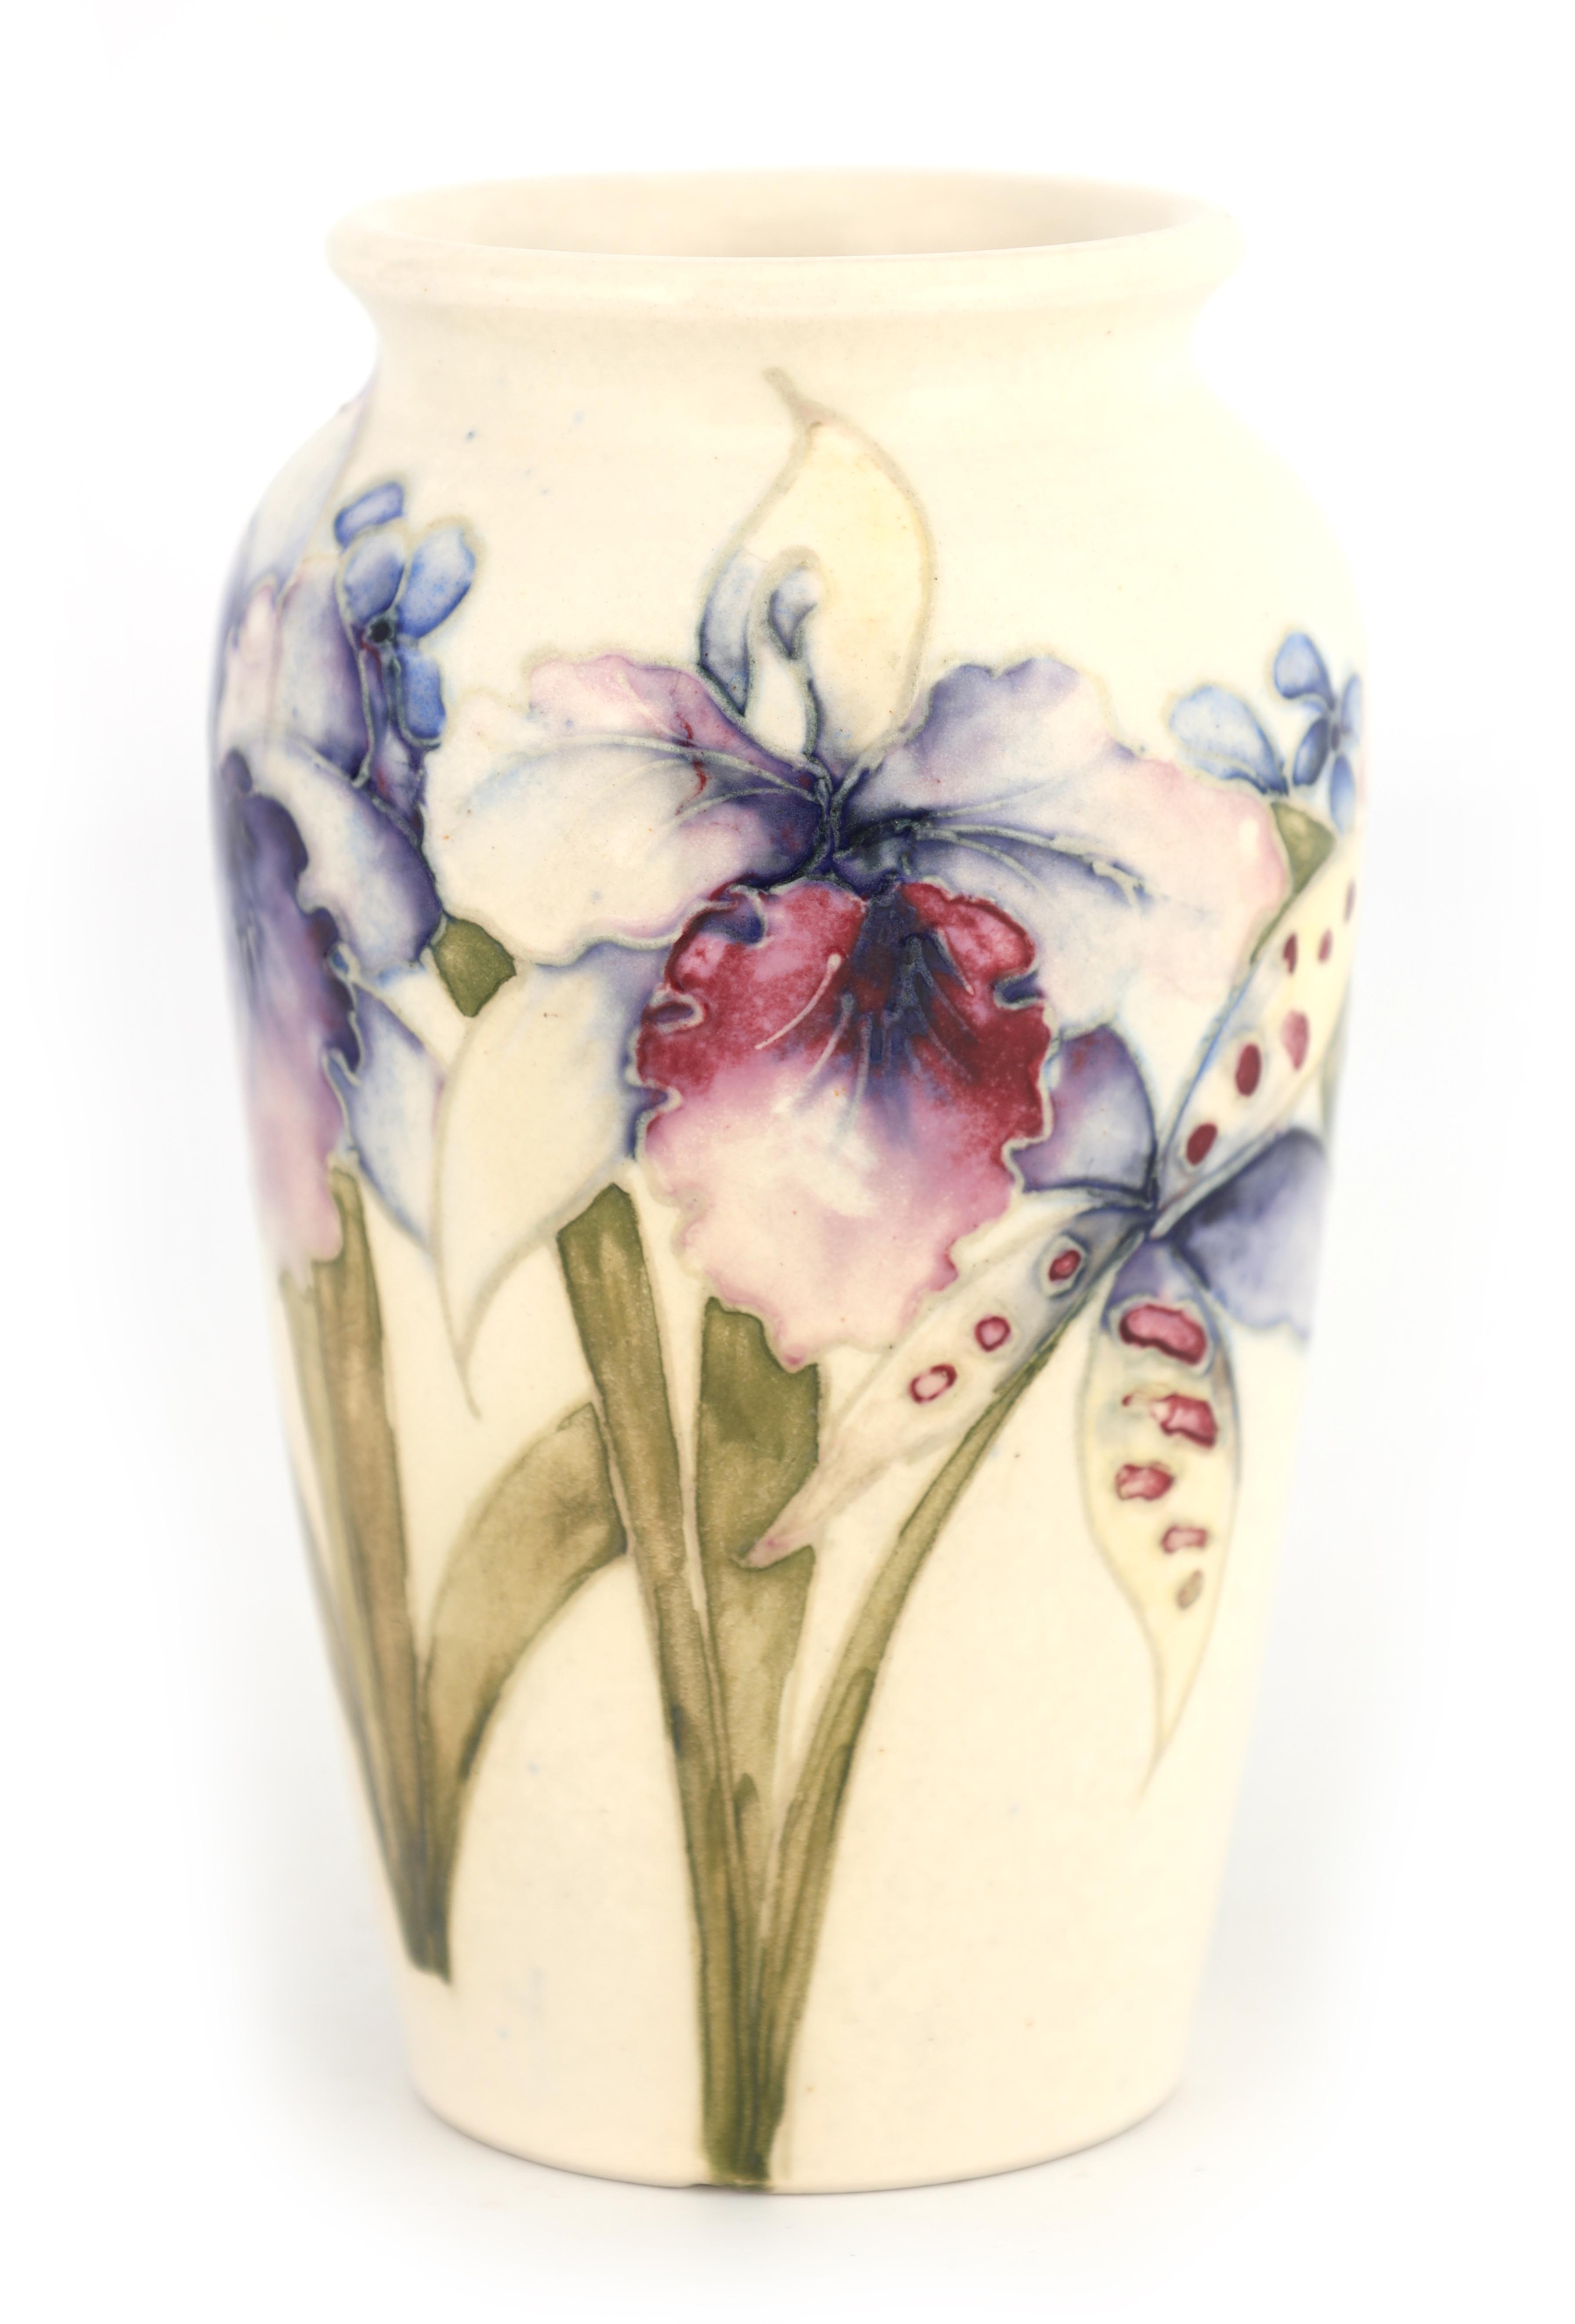 A MOORCROFT SMALL TAPERING SHOULDERED VASE decorated with orchid sprays on a cream ground, 13cm